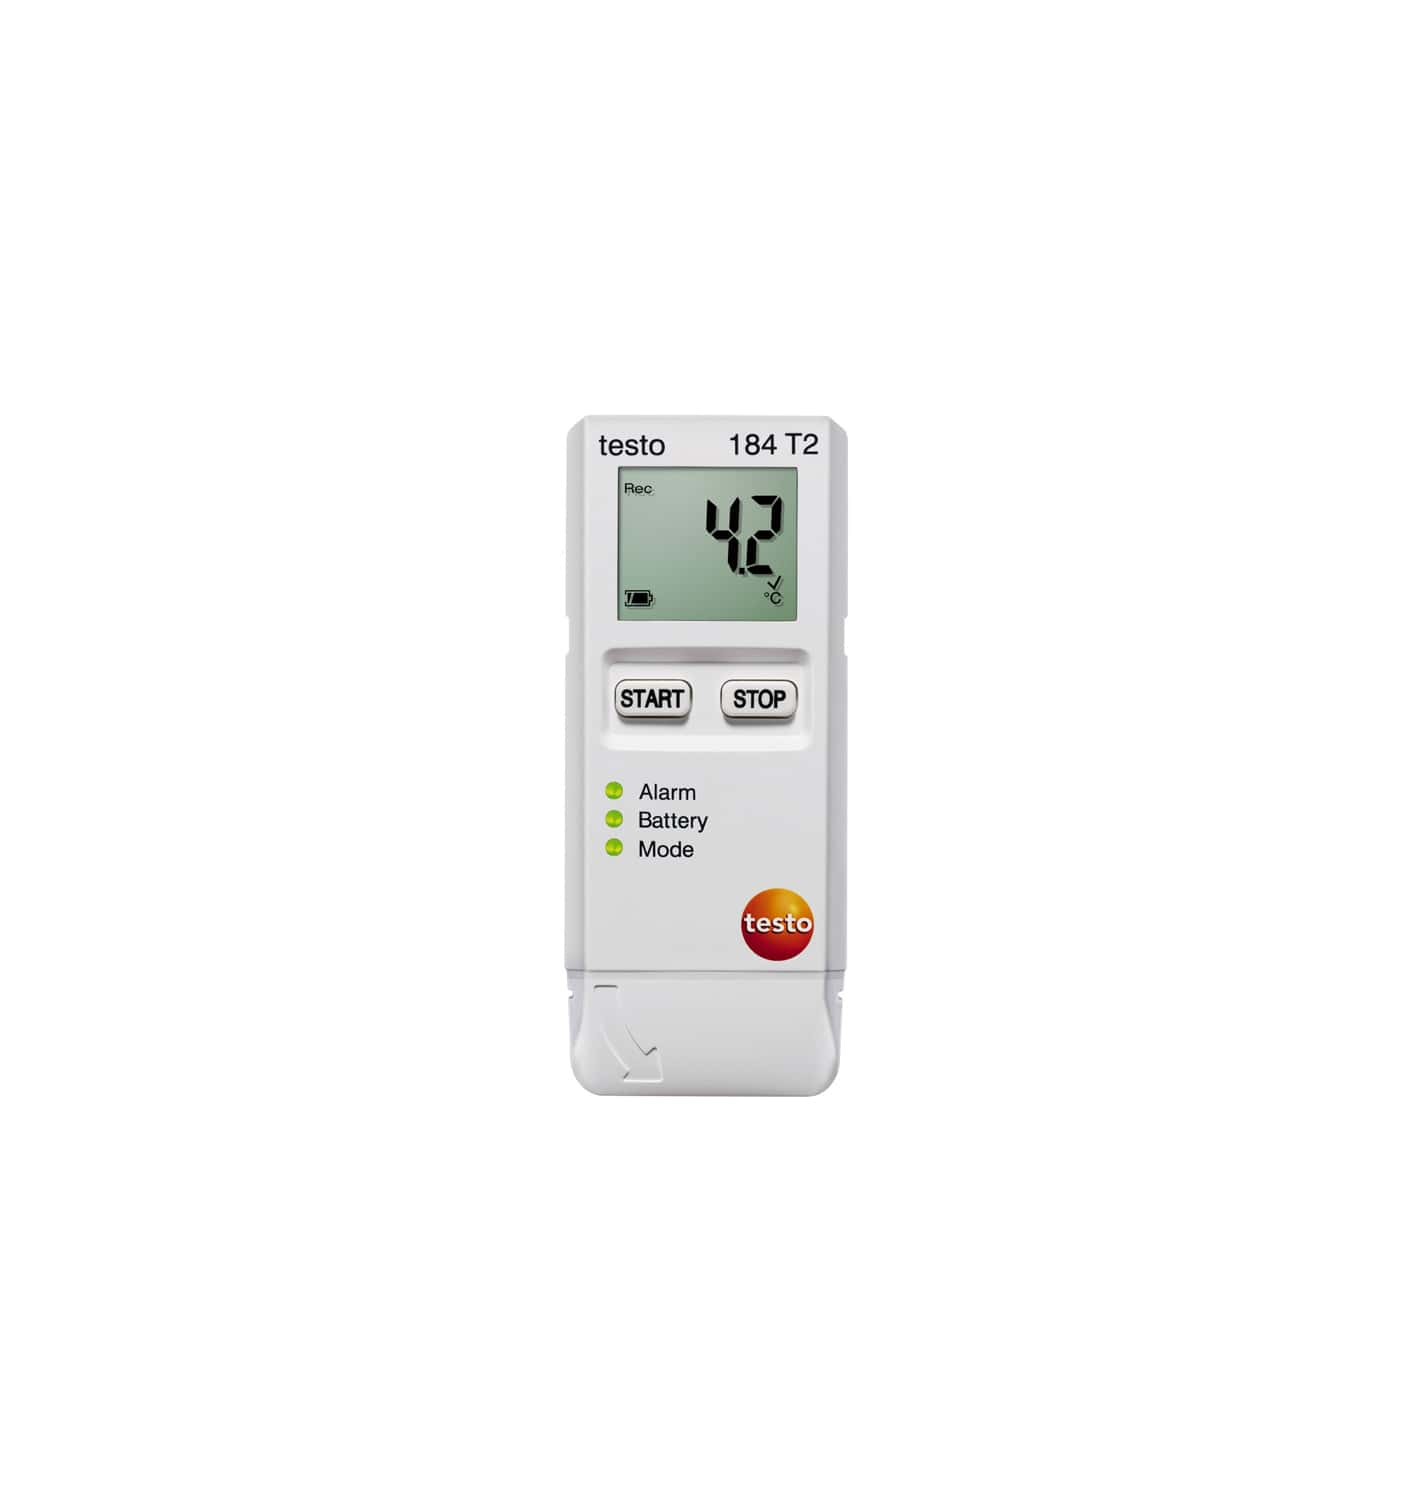 testo 184 T2 - Temperature data logger for transport monitoring